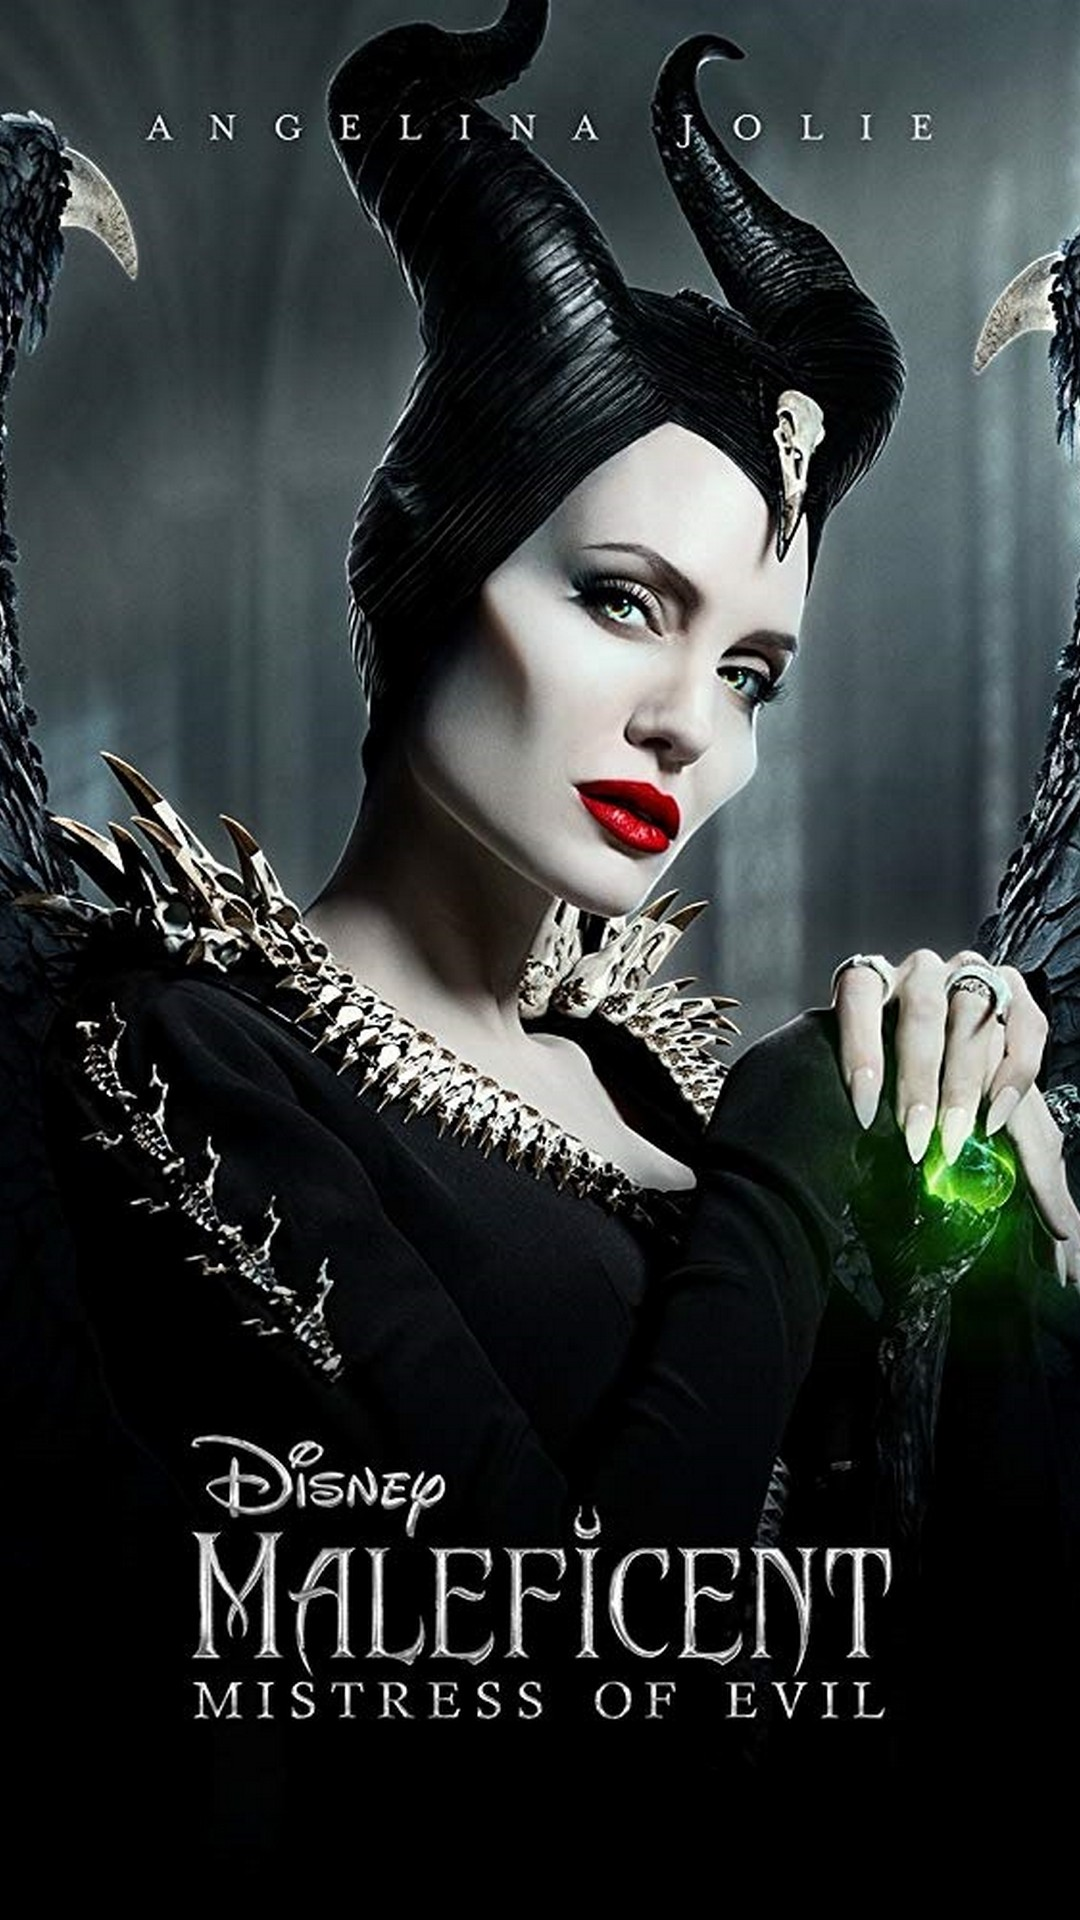 Wallpaper Maleficent Mistress of Evil Android